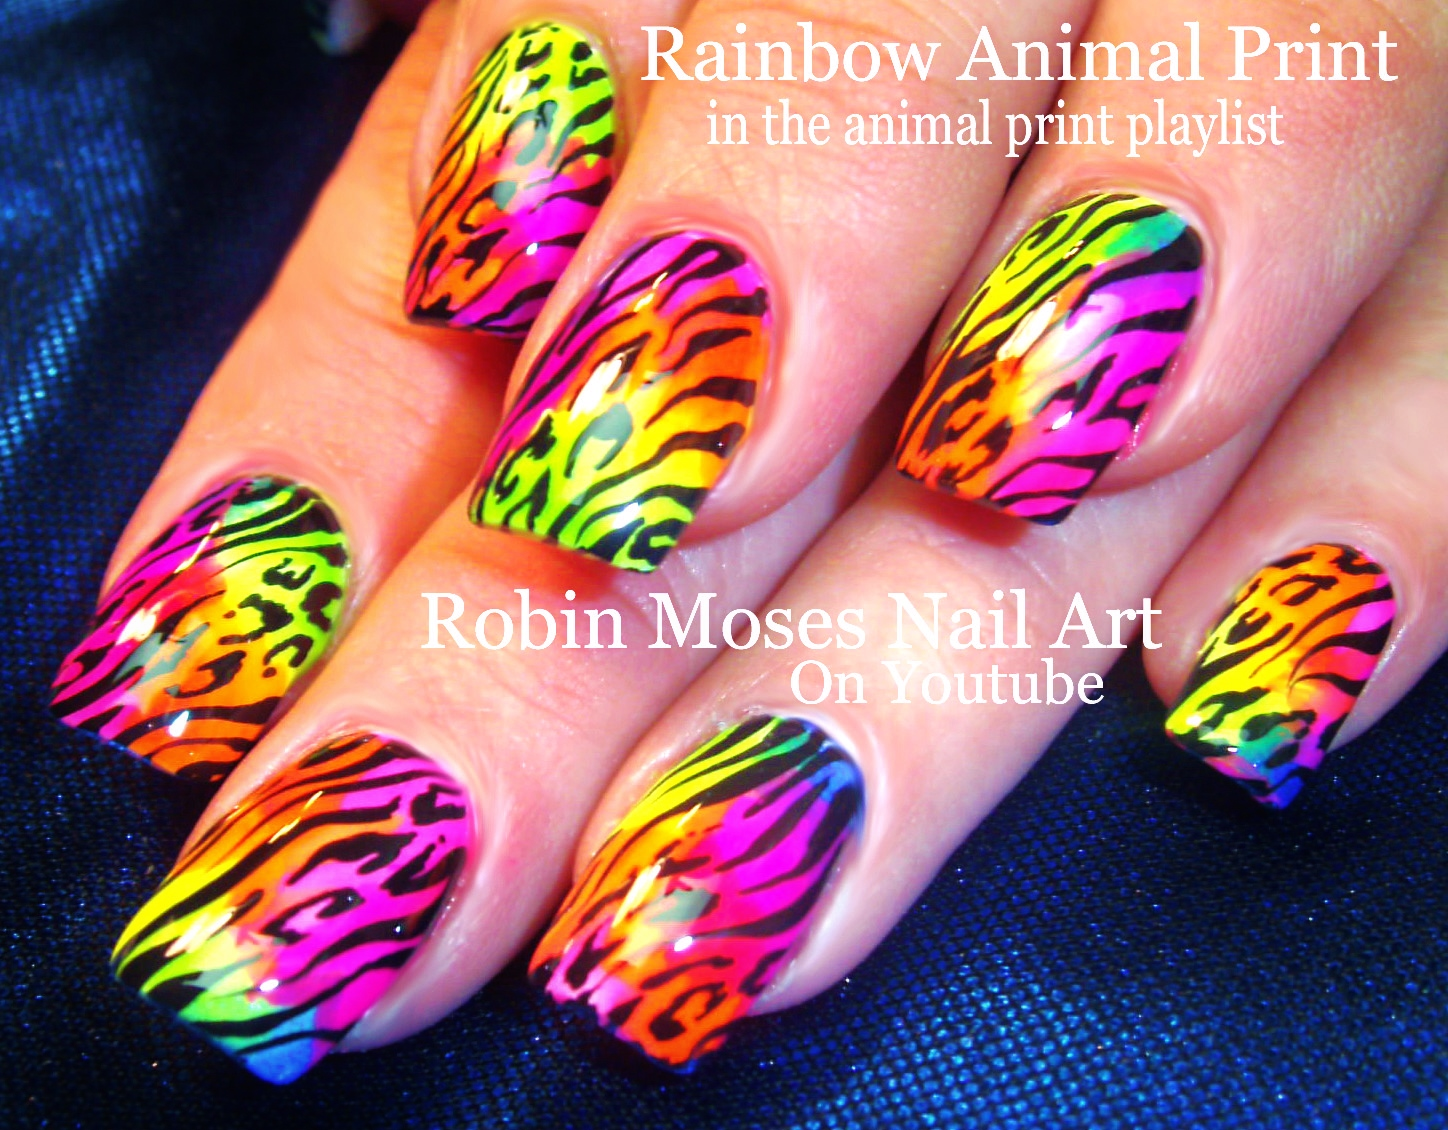 Hot Rainbow Animal Print Design to bring out your nail art Wild side!  Rawrrr! :D Tutorial inside! - Robin Moses Nail Art: Hot Rainbow Animal Print Design To Bring Out